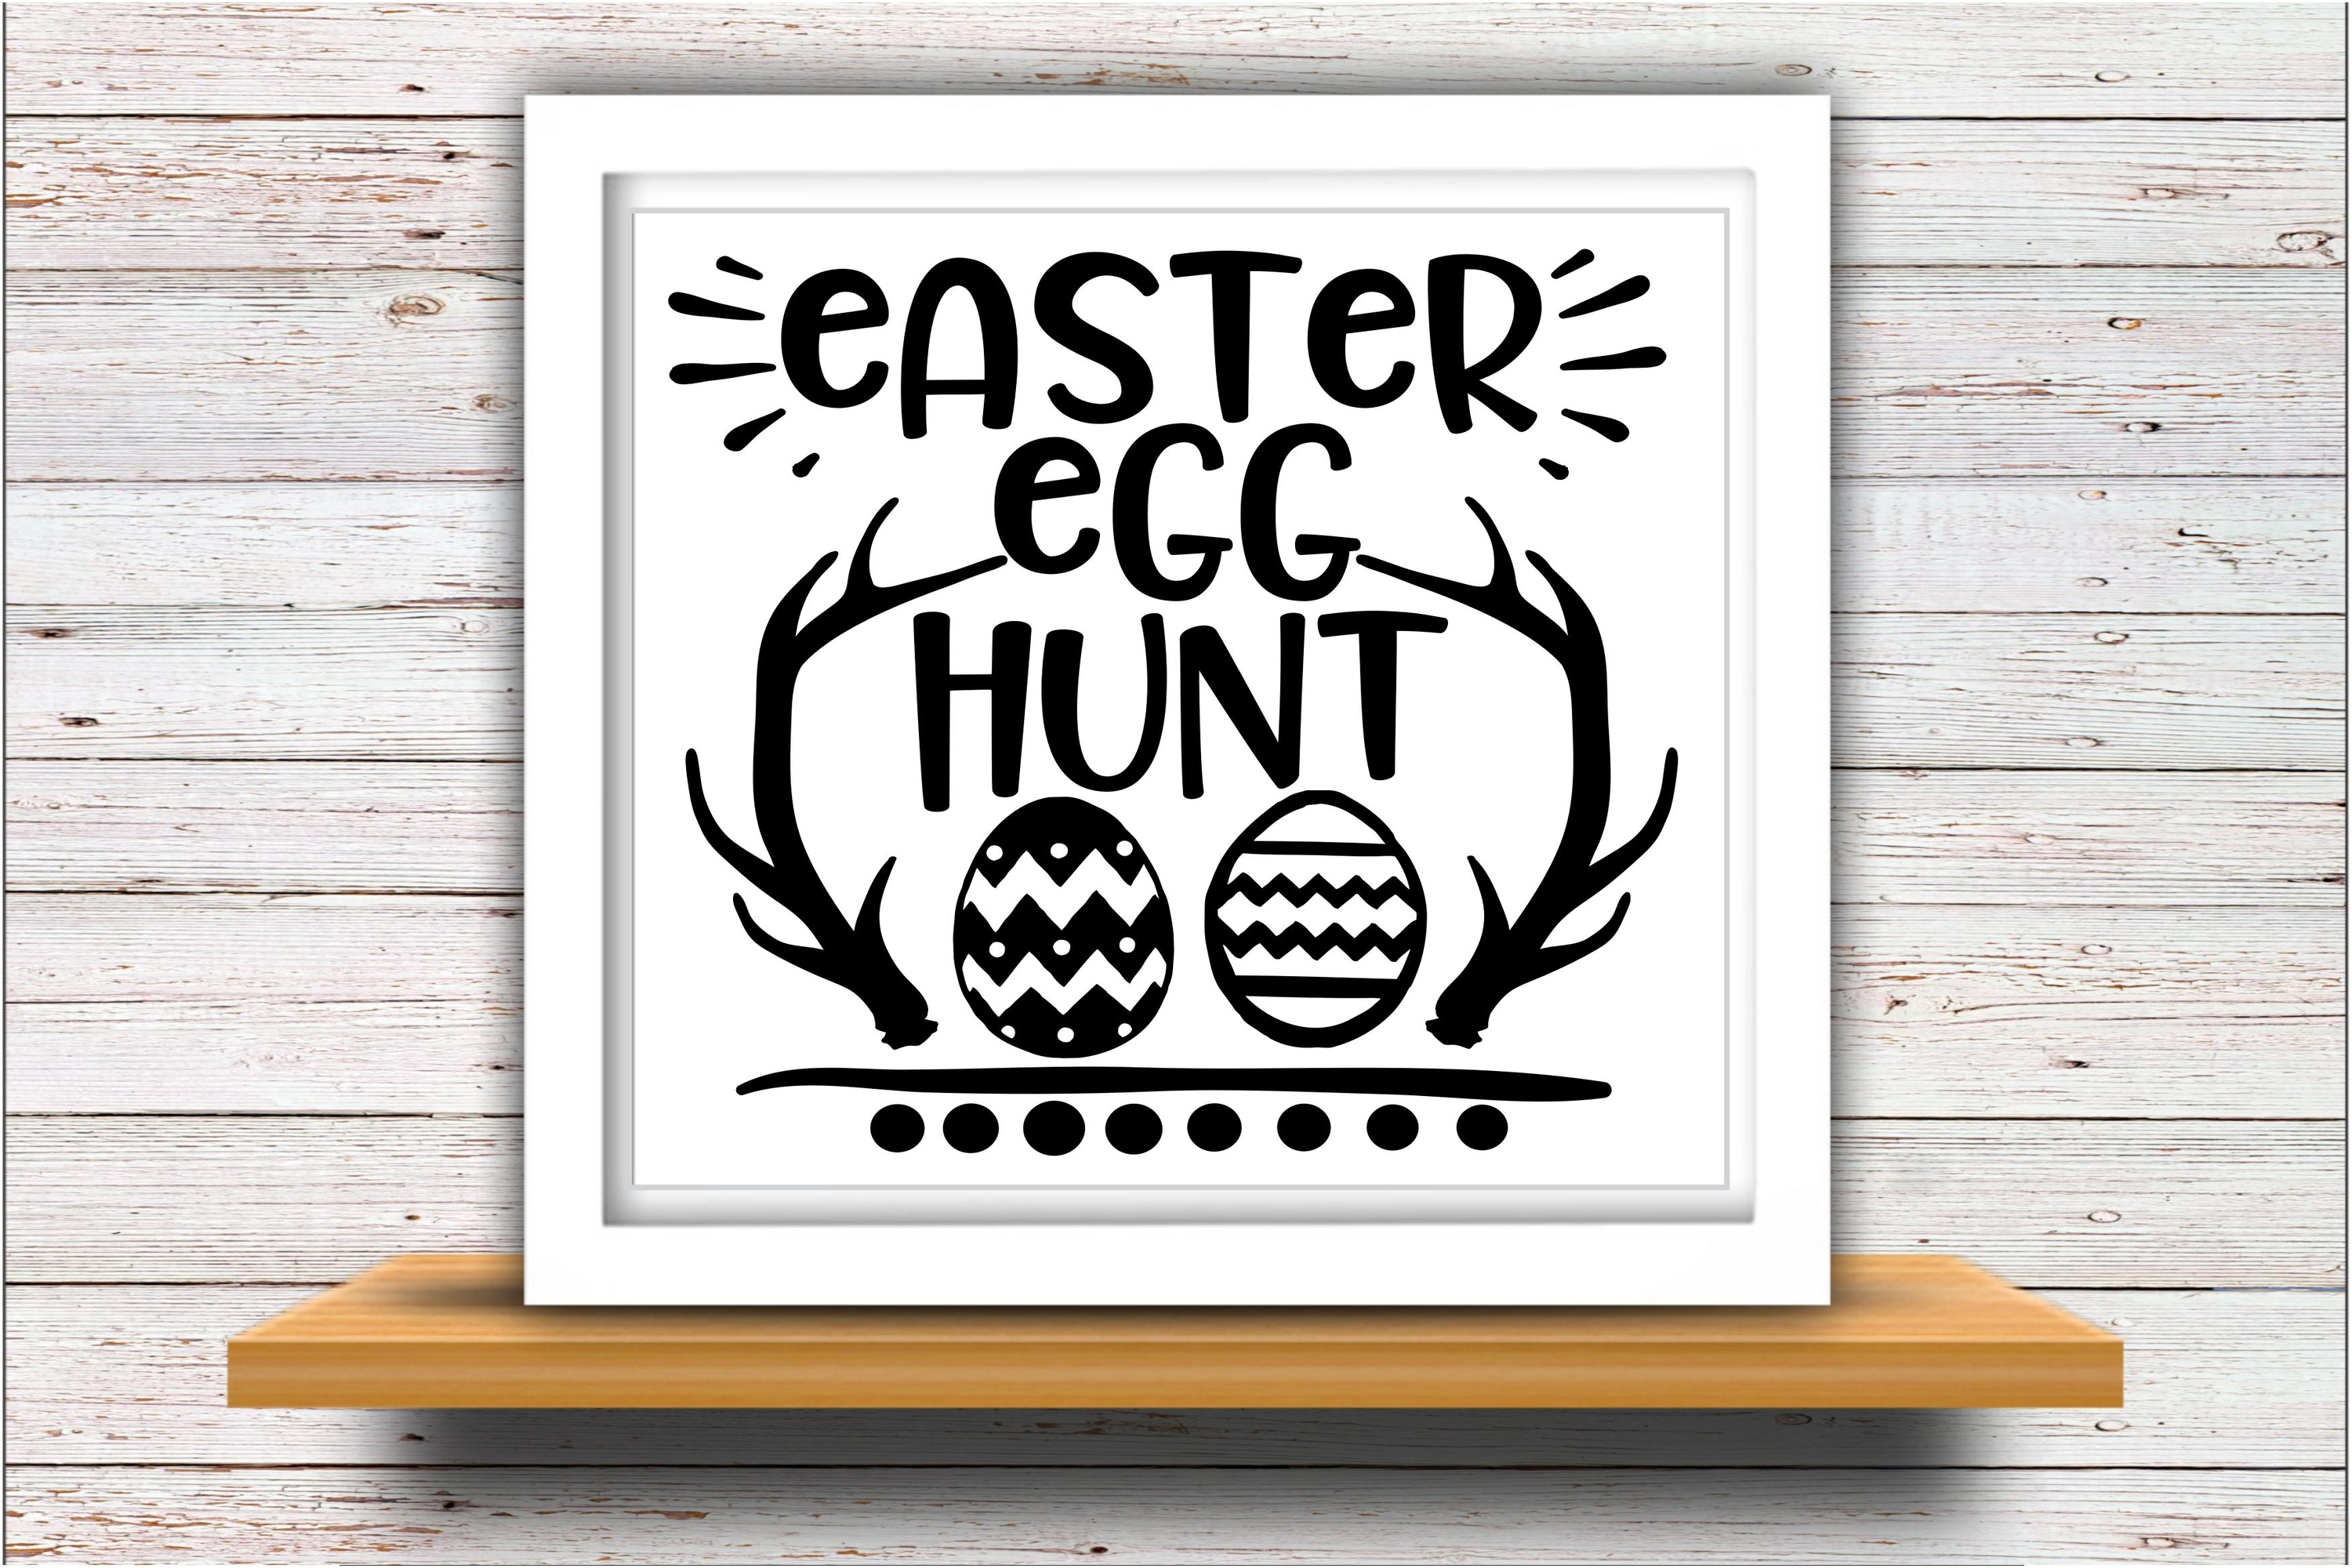 Happy Easter SVG DXF JPEG Silhouette Cameo Cricut Egg hunt example image 2